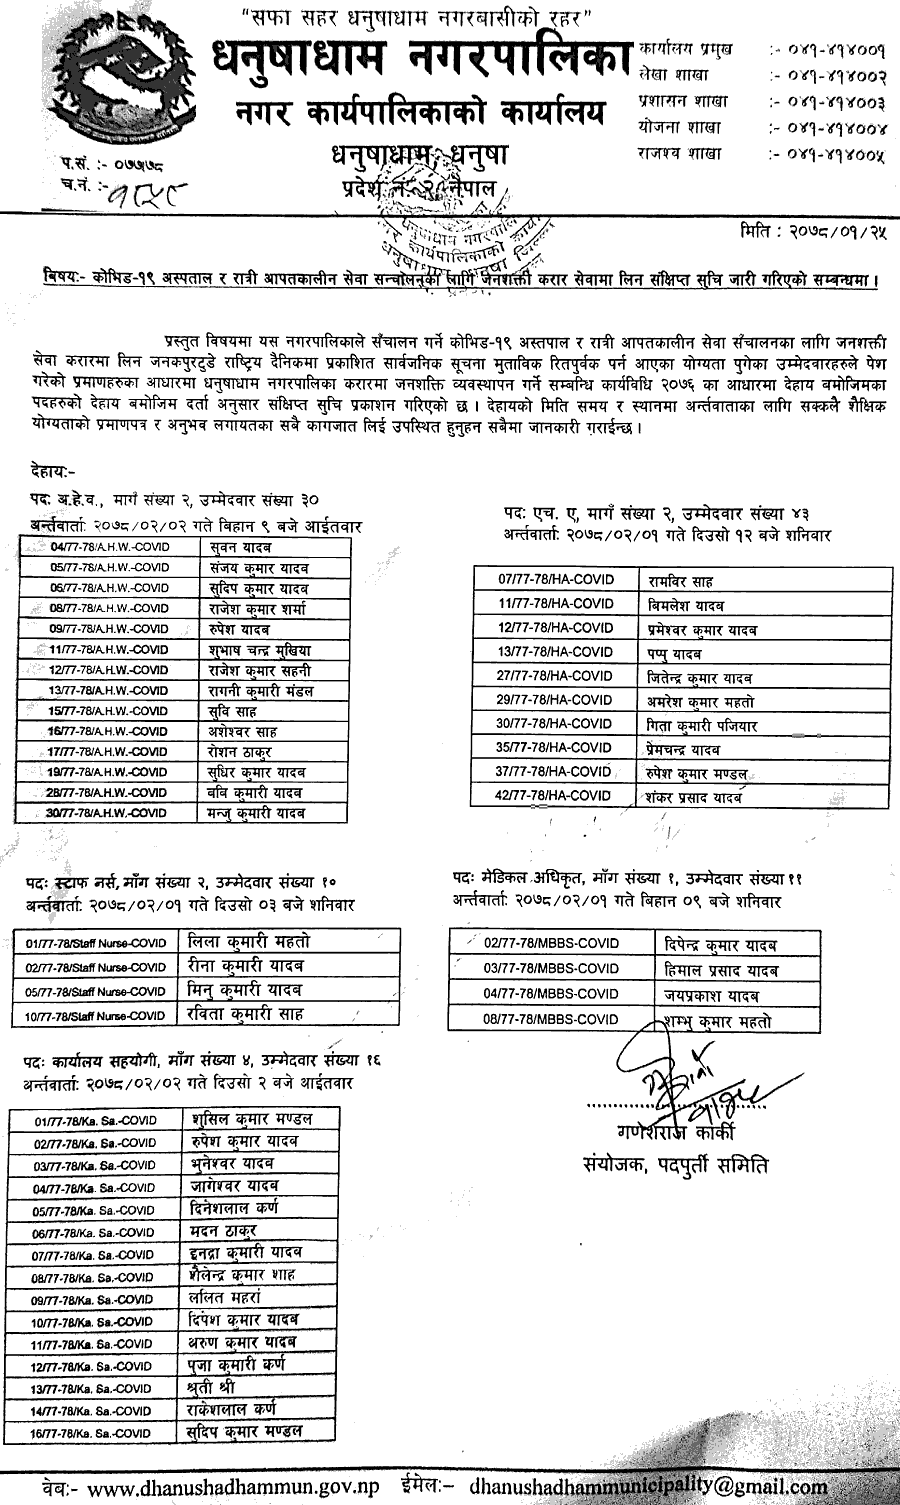 Dhanushadham Municipality, Dhanusa Shortlisting and Interview Notice for for HA, ANM and Office Helper